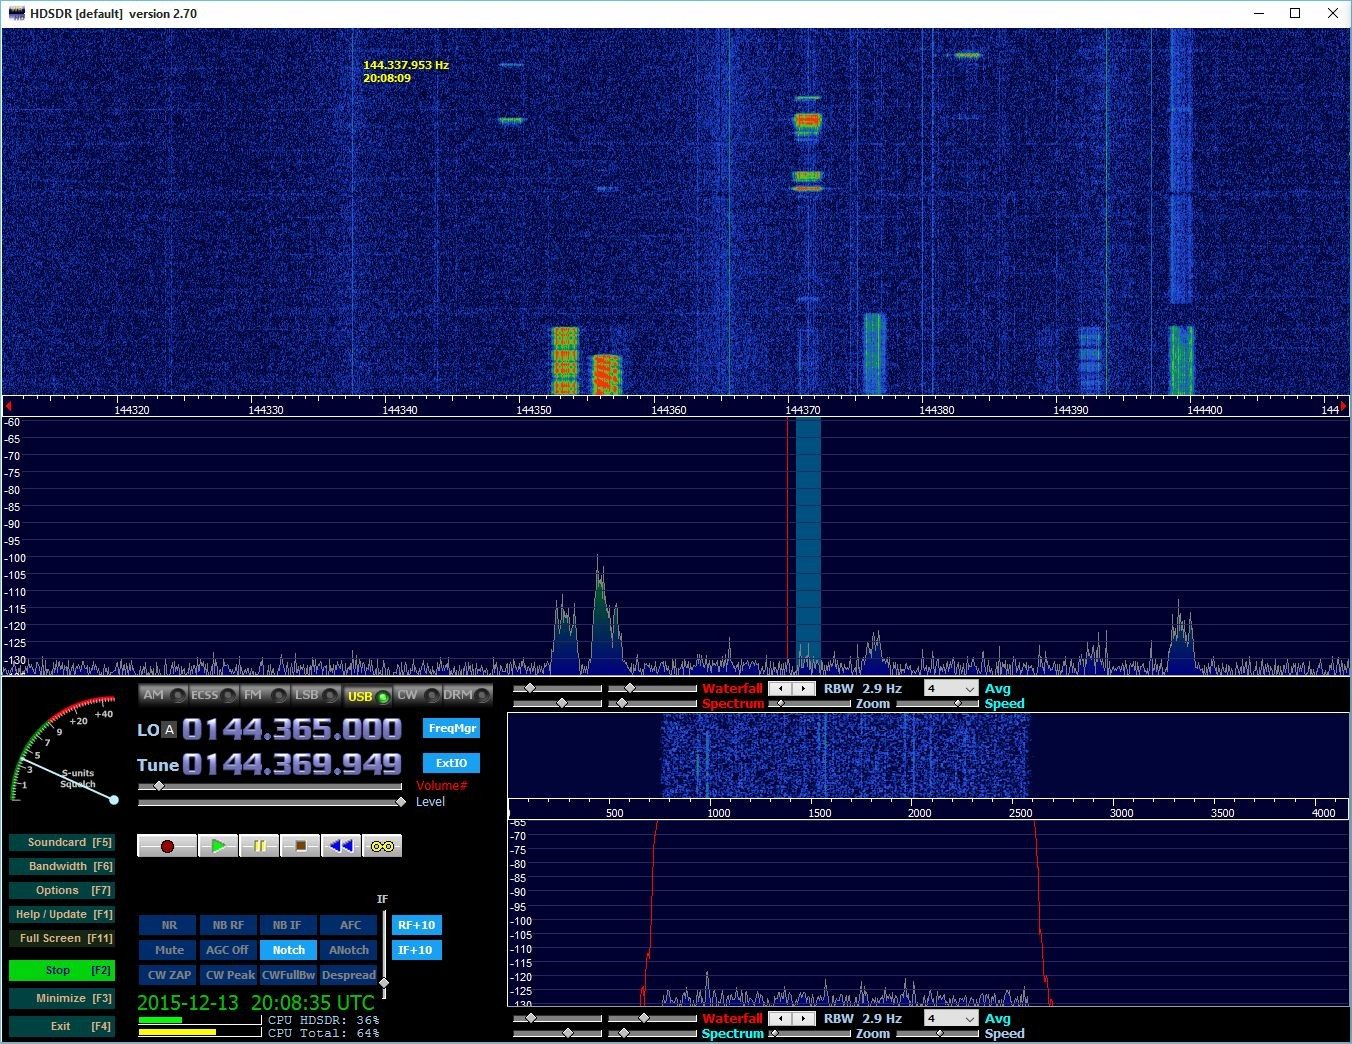 Lots of bursts from YL3AO calling CQ on 144.370